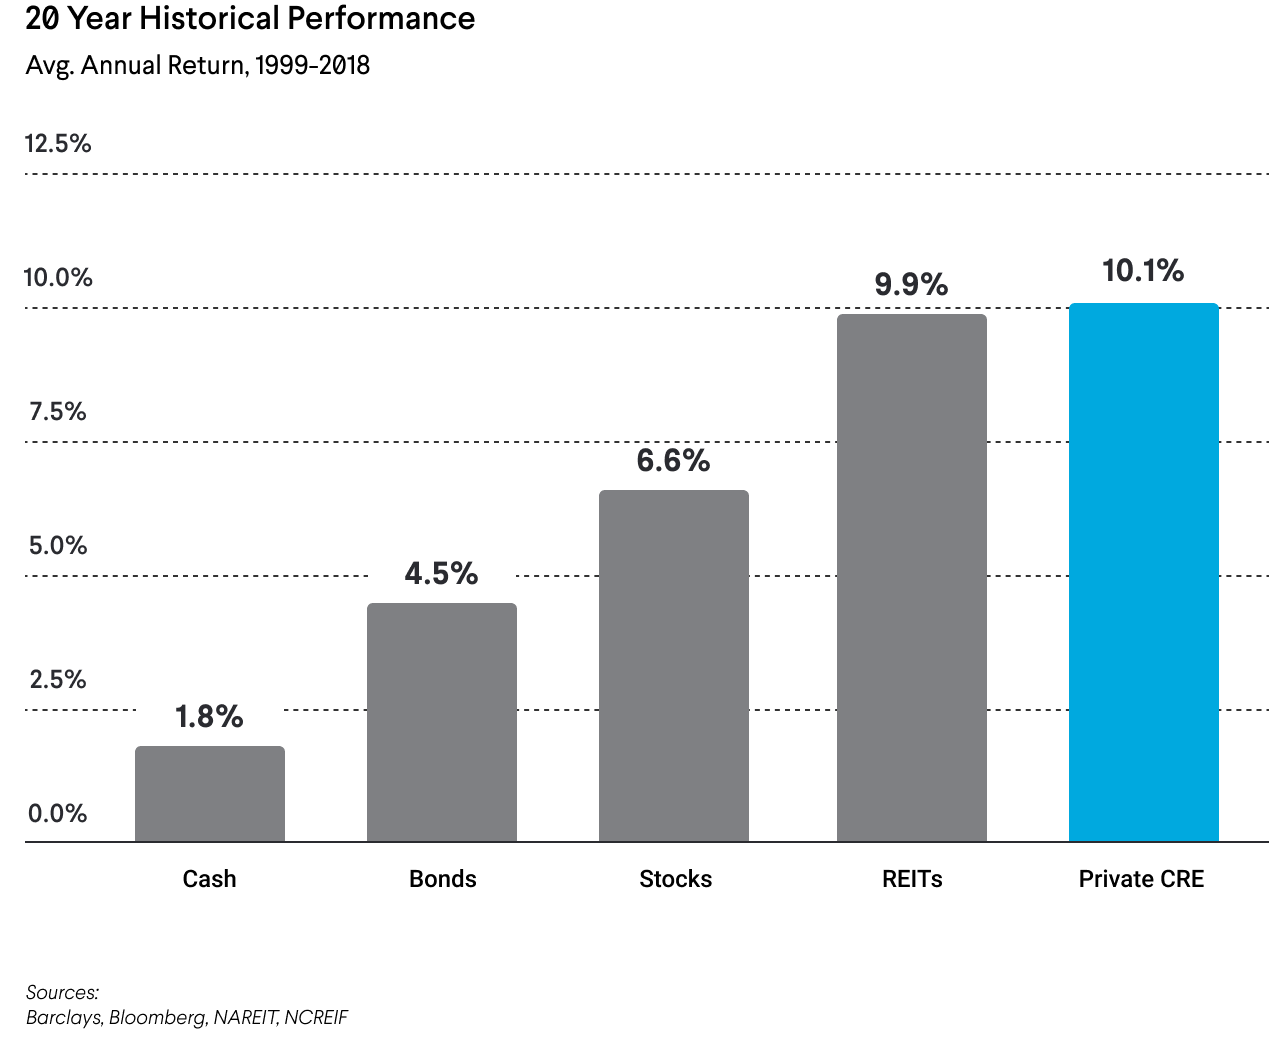 20 year historical performance, commercial real estate investing vs. other assets